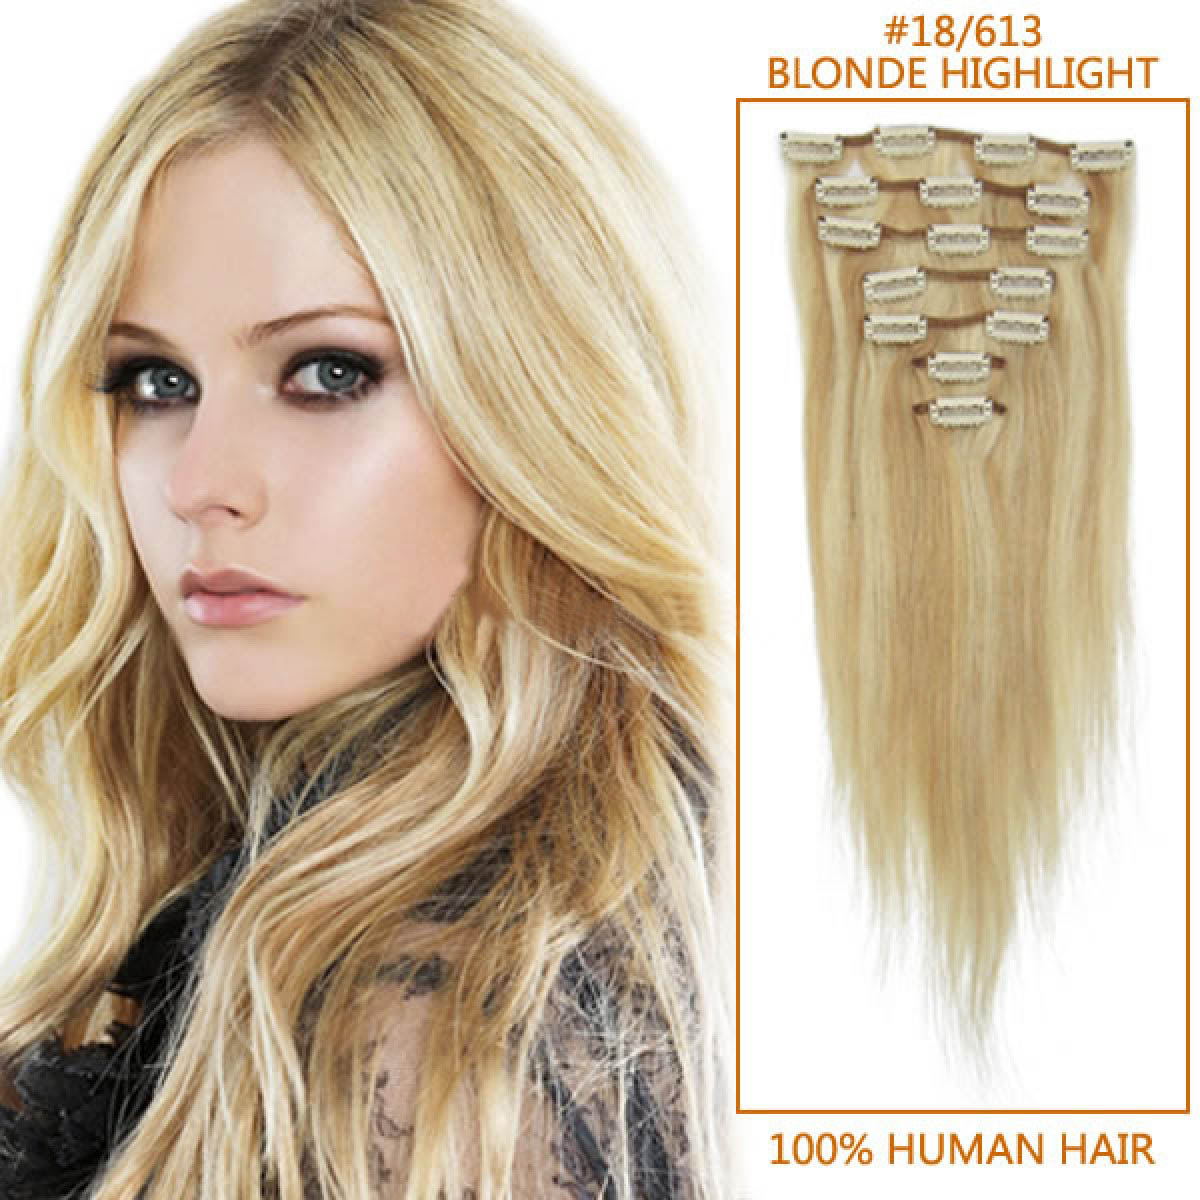 24 Inch 18613 Blonde Highlight Clip In Remy Human Hair Extensions 7pcs